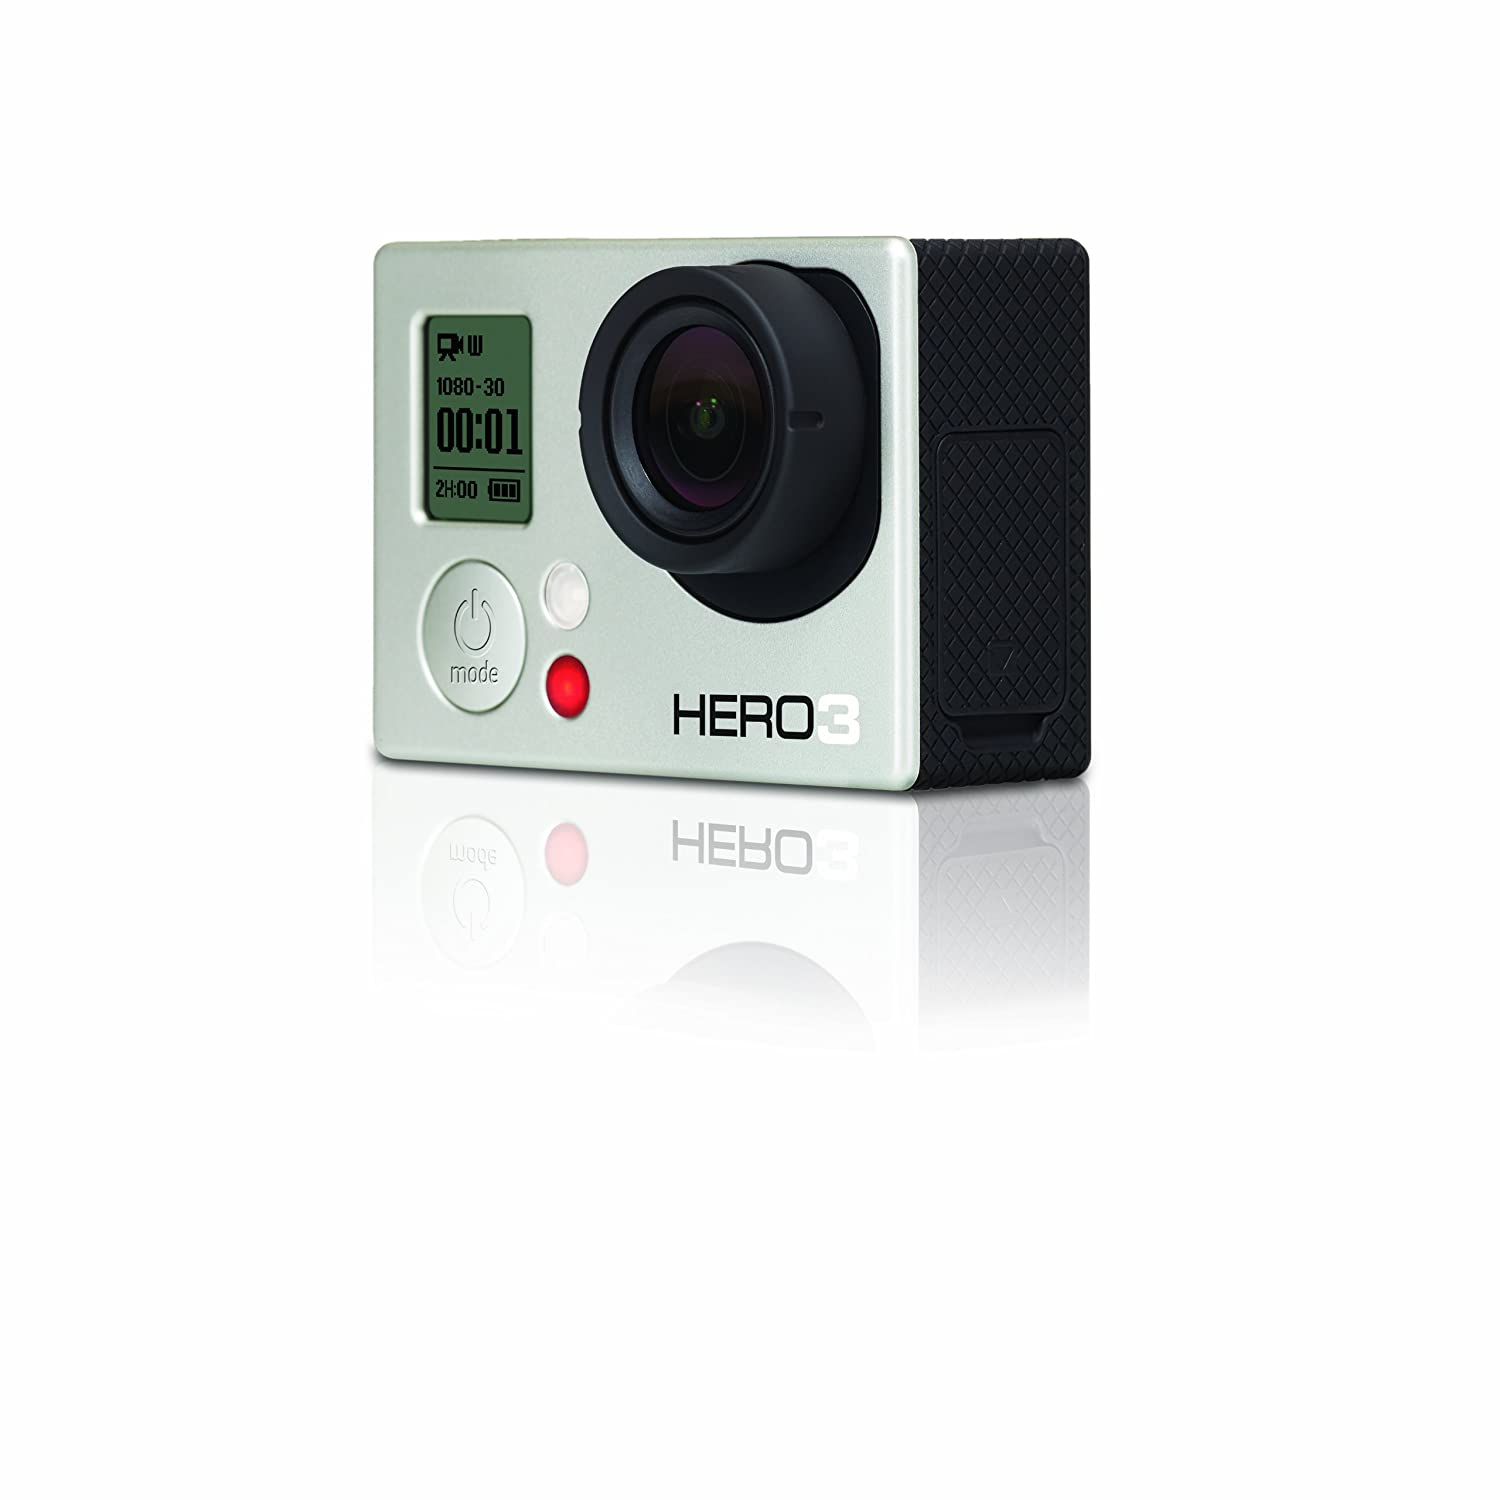 gopro hero 3 camera white edition price in pakistan go. Black Bedroom Furniture Sets. Home Design Ideas